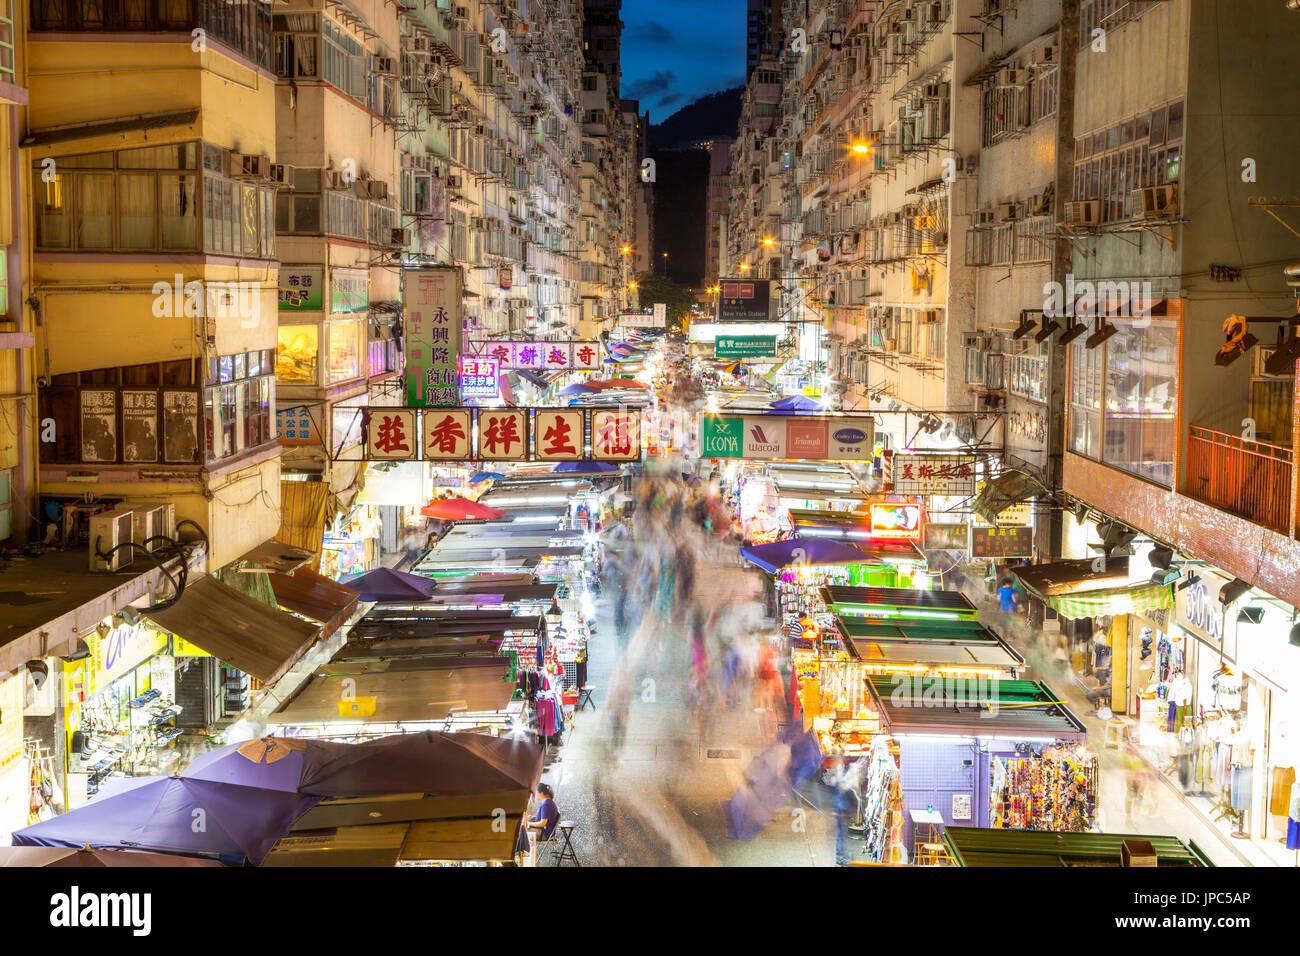 Night market in busy Fa Yuen Street in Mong Kok, Hong Kong, China. The area is popular with tourists and locals Stock Photo